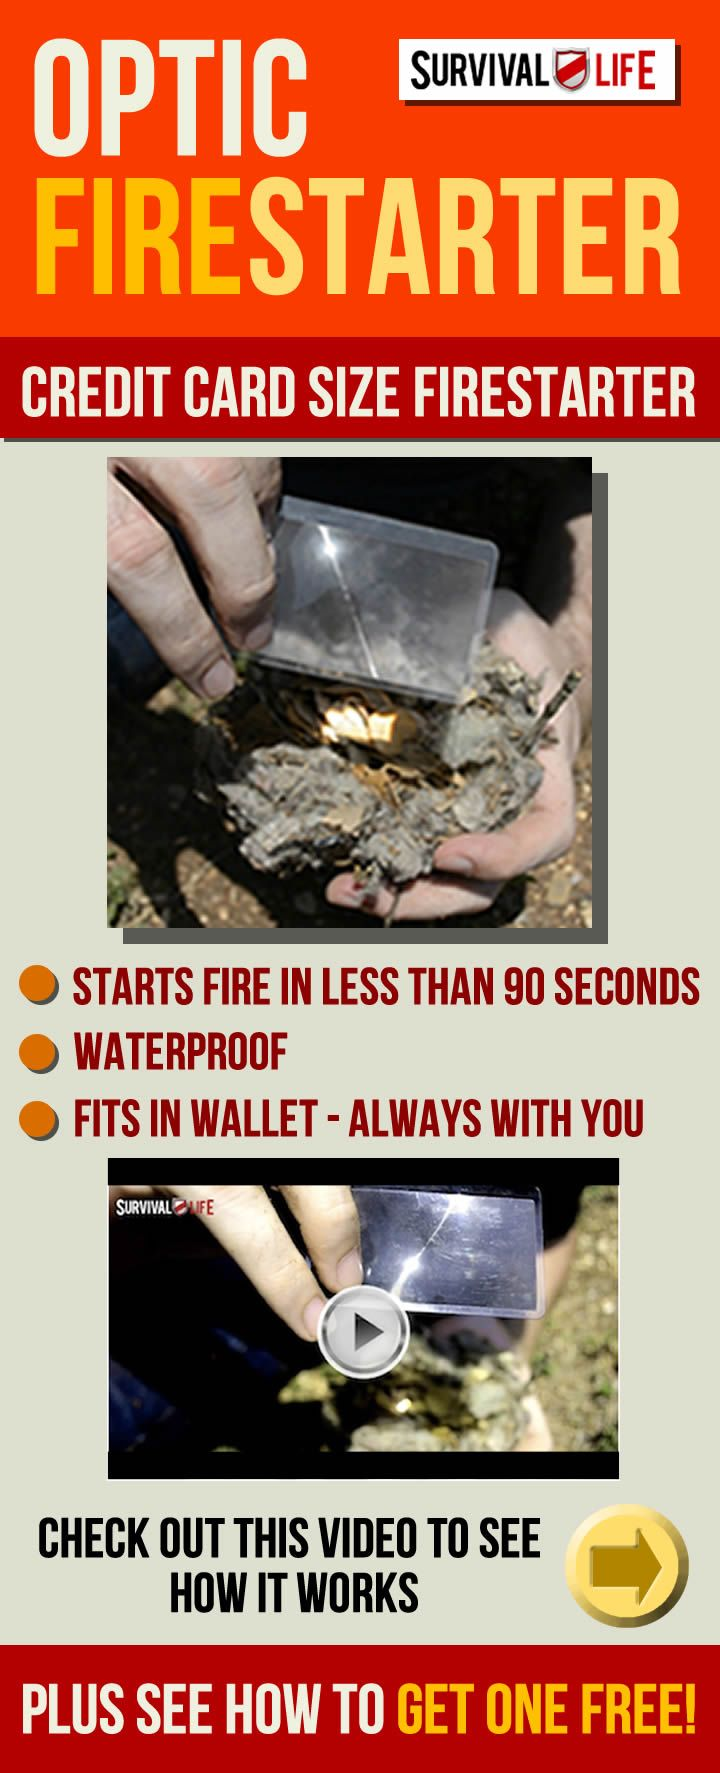 Check out this cool Optic Fire Starter! It fits in your wallet and starts fires in under 90 seconds. Click on link for video that shows this cool survival gear in action, plus see how to GET ONE FREE from Survival Life. #survivallife | survivallife.com